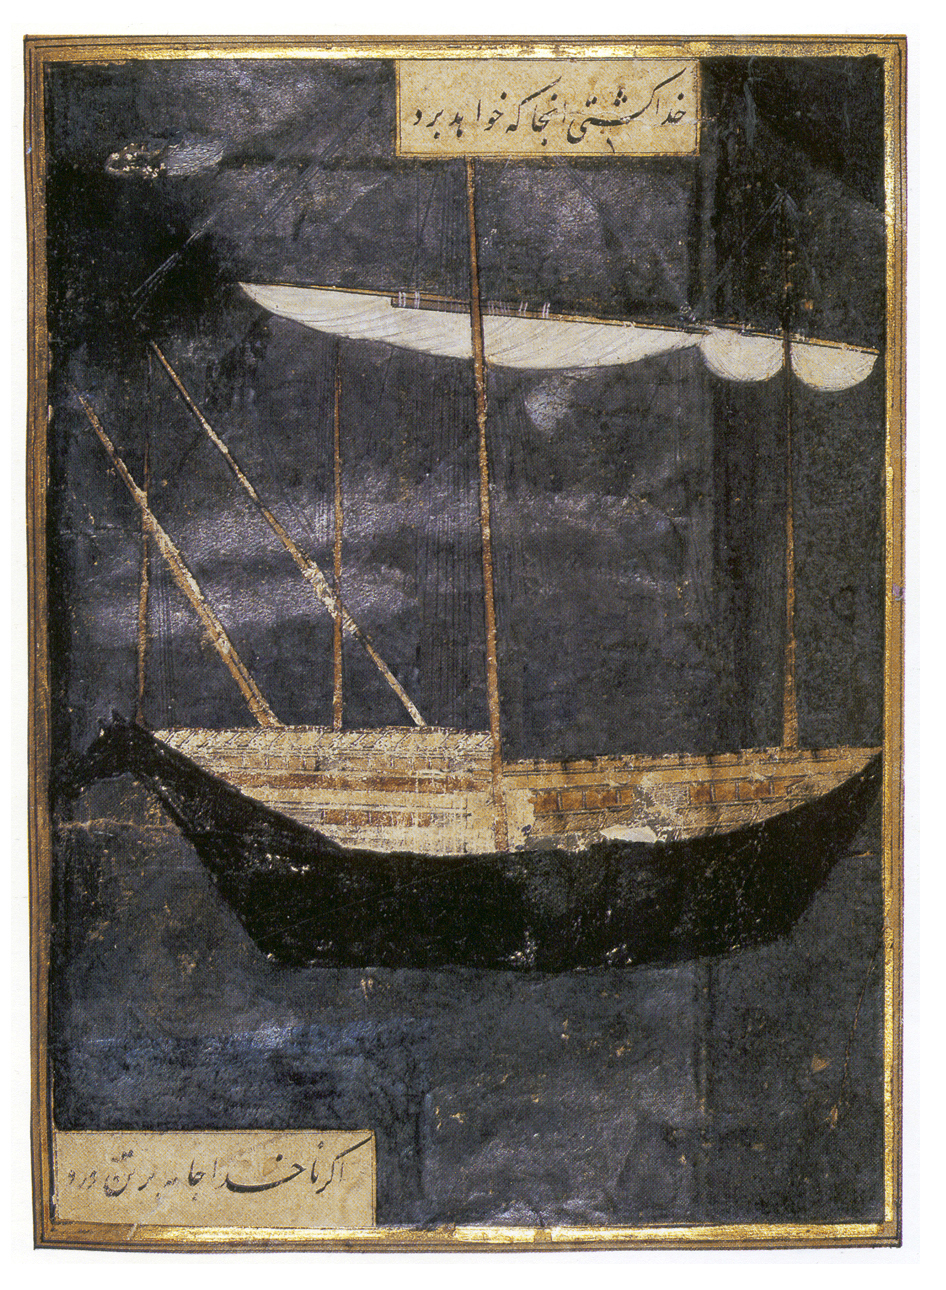 Title: God Sets the Course for the Ship, and Not the Captain Date: 2015 Medium: Mixed media on Japanese rice paper Size: h: 4.09 in w: 2.95 in